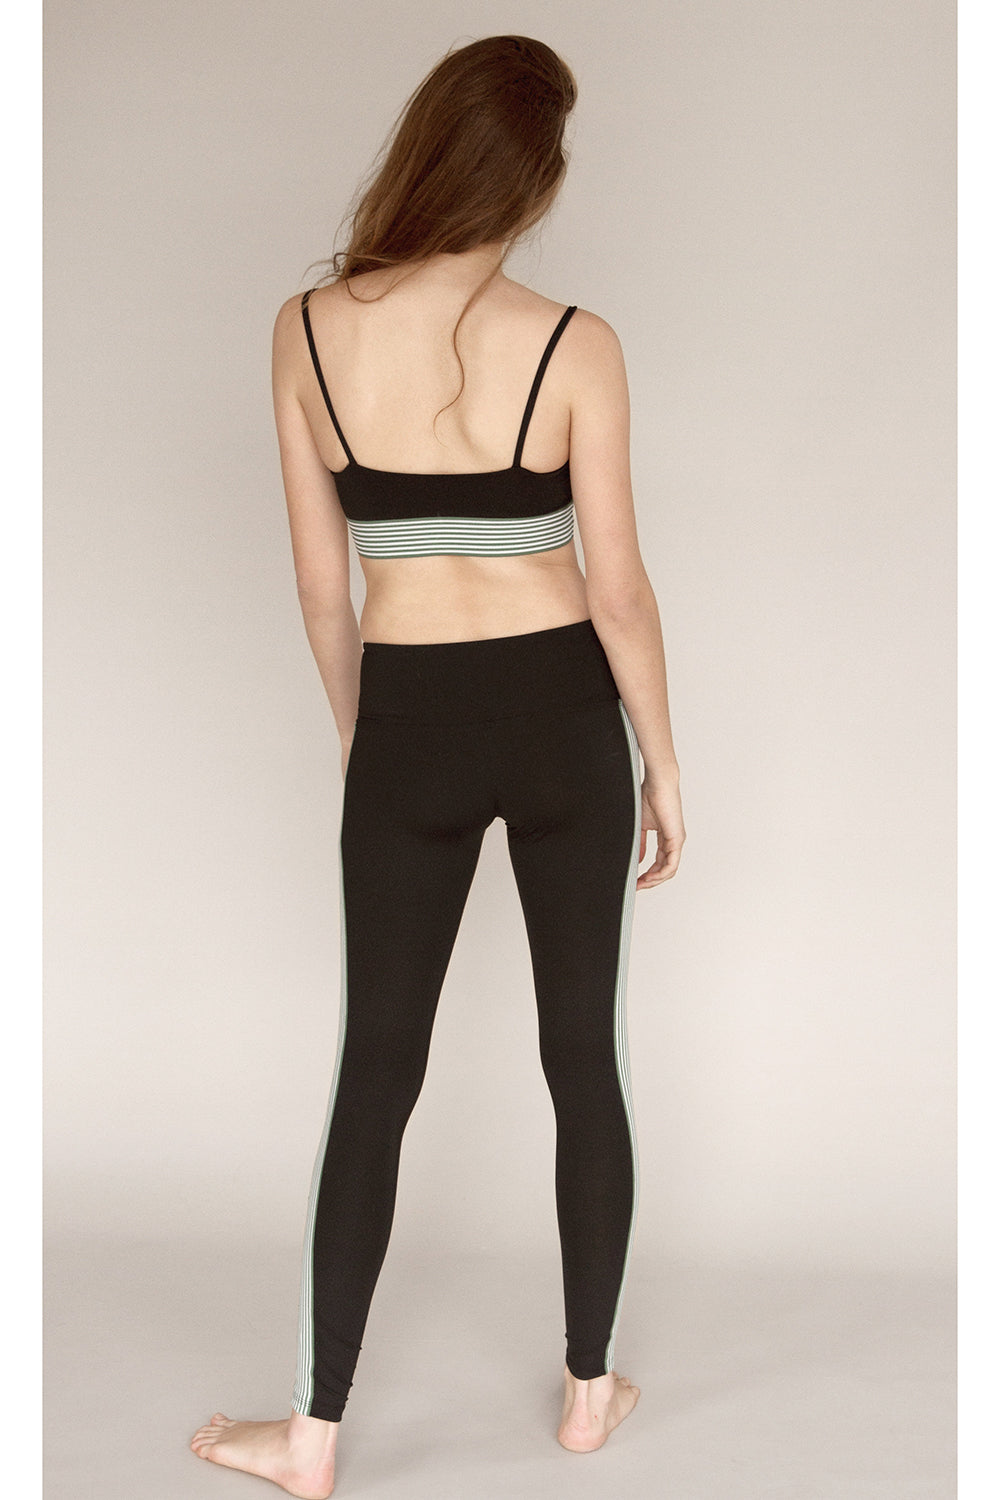 Olympia Activewear Titus Ankle Legging in Jet